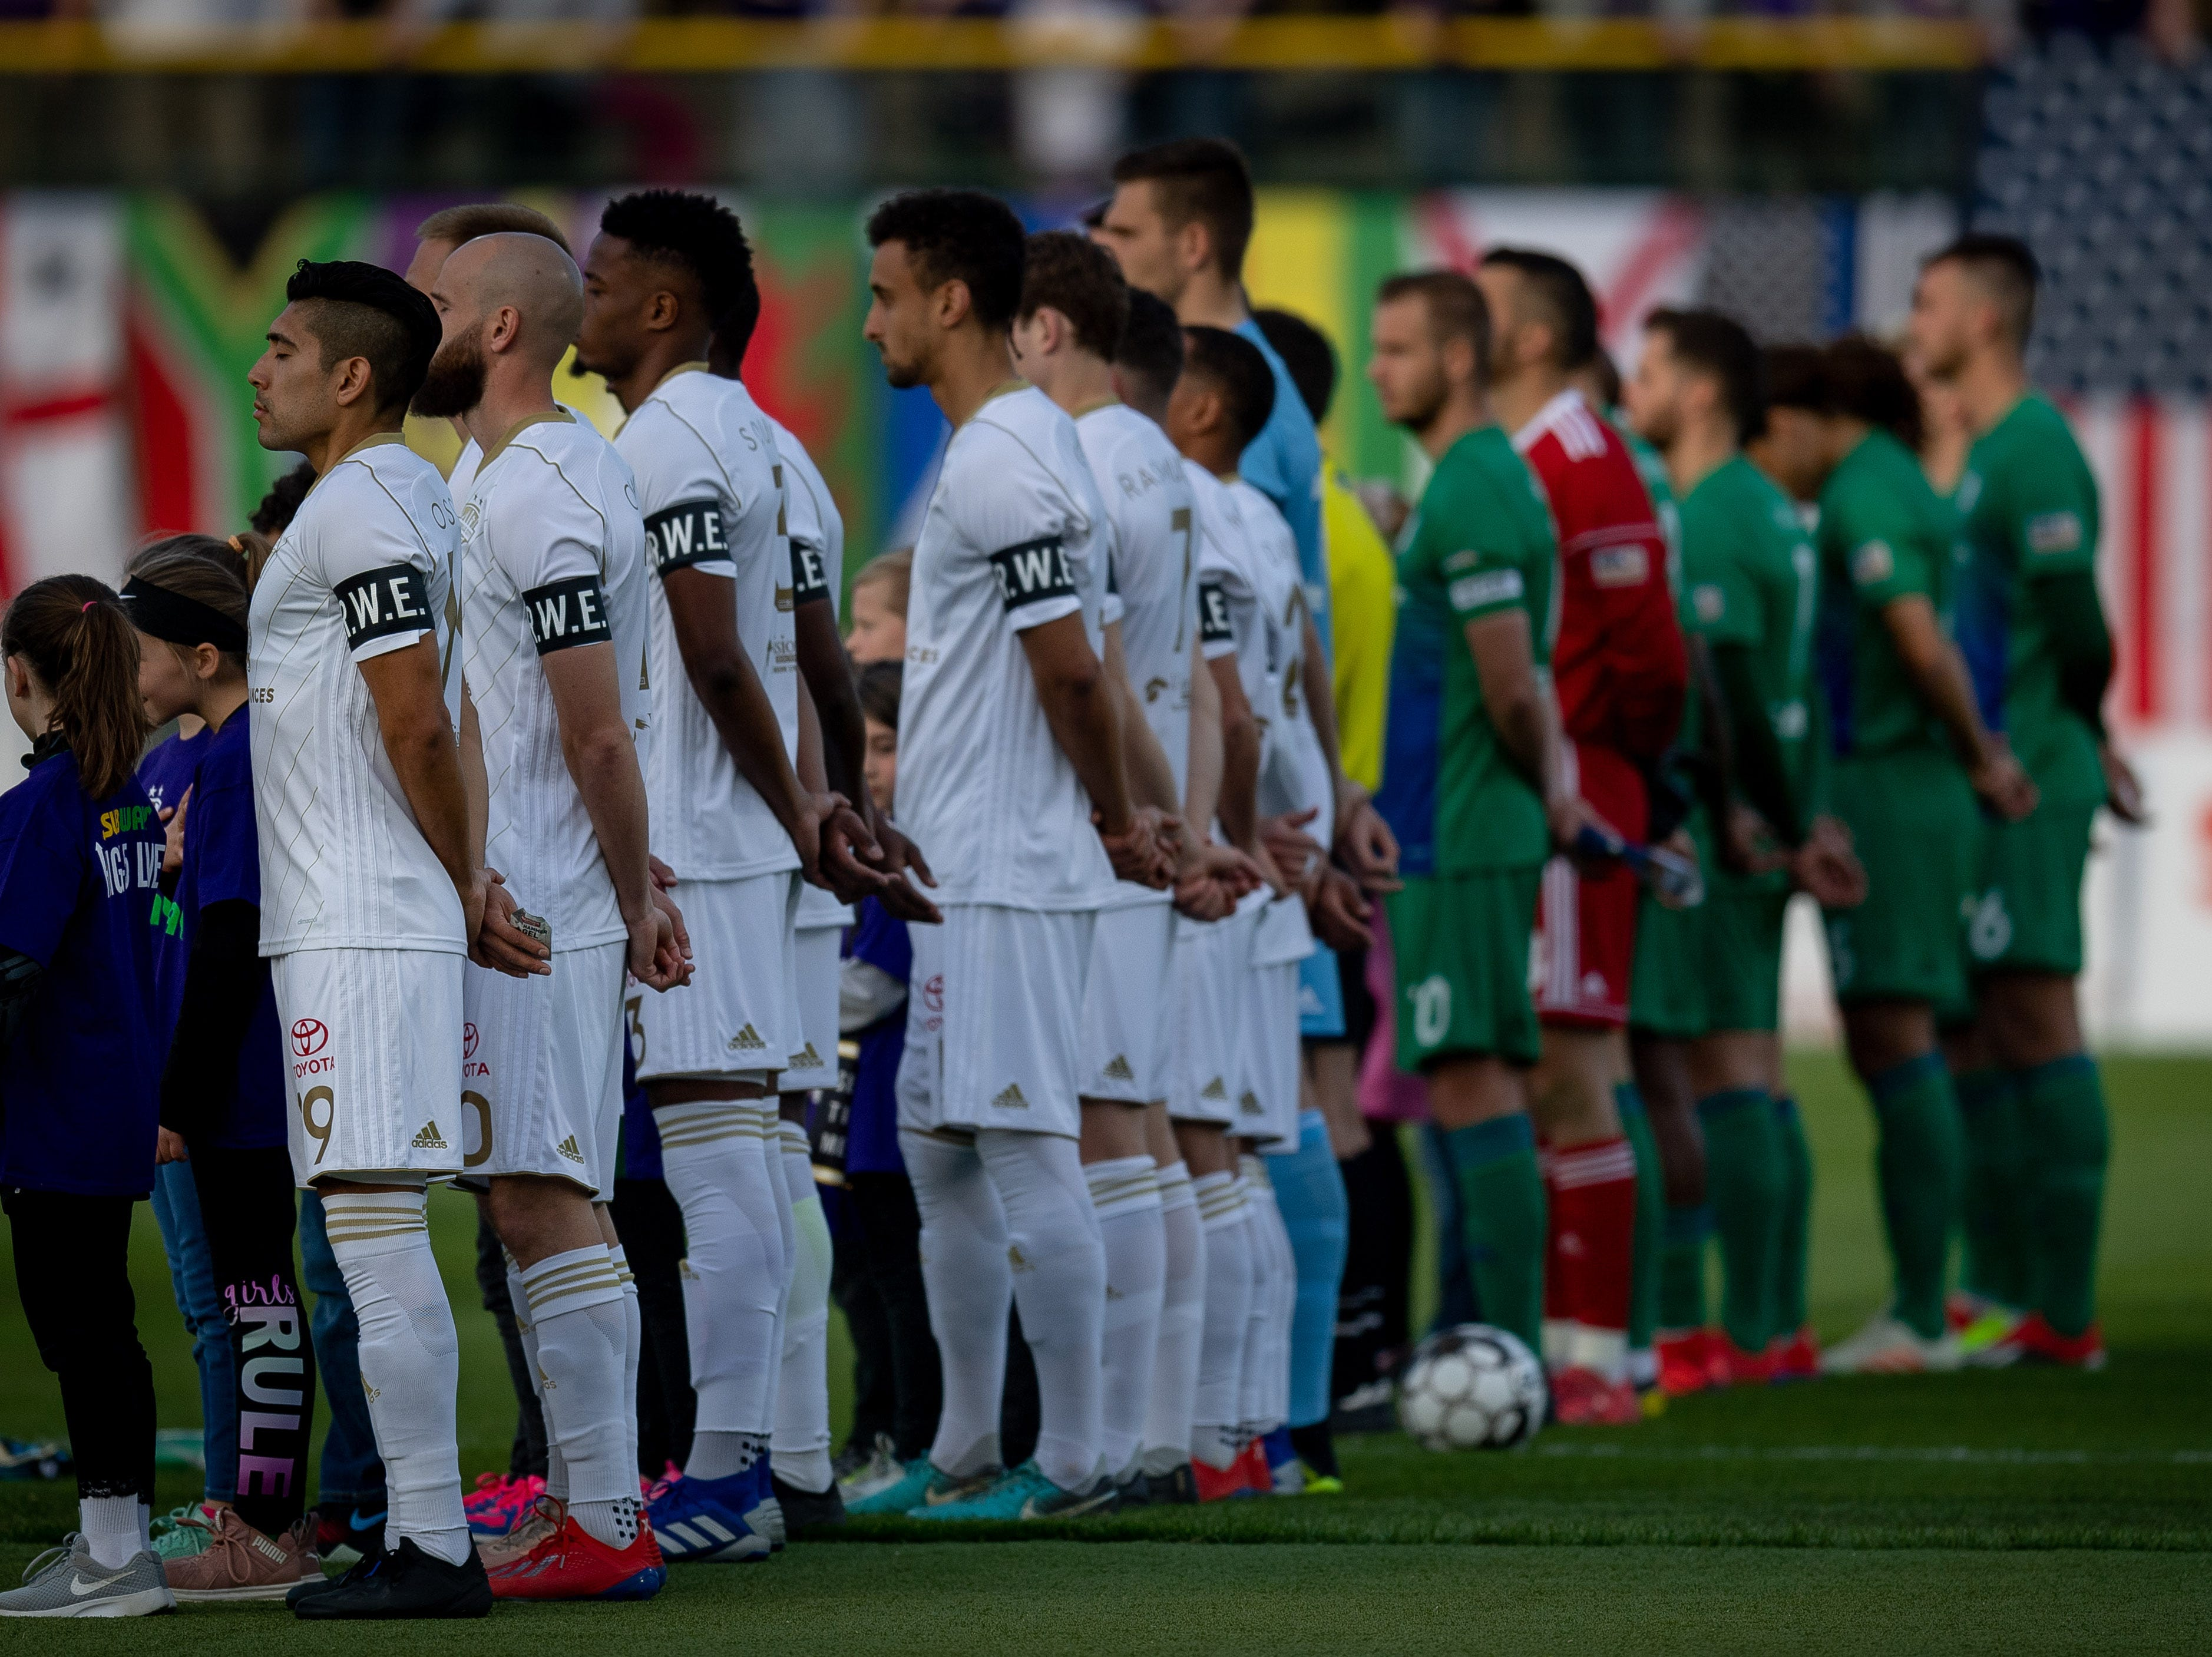 Louisville City FC players line up for their match in Louisville, Ky., Saturday, March 23, 2019.